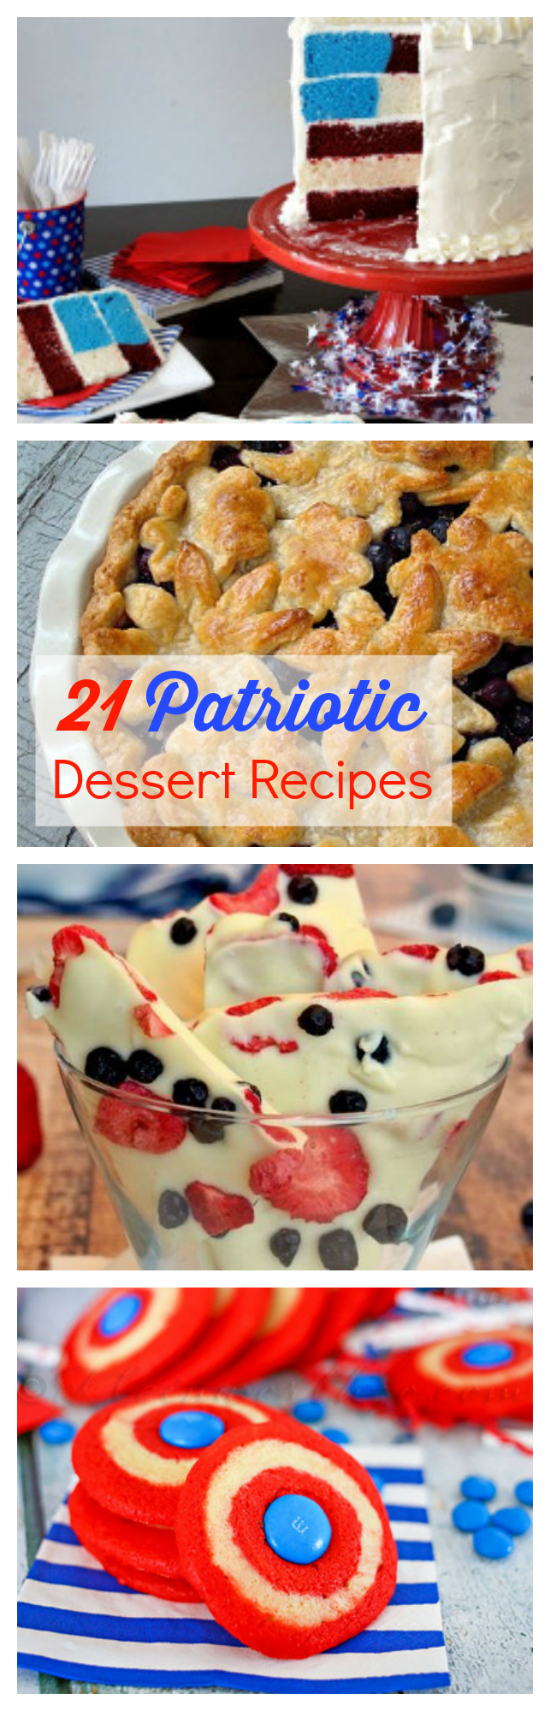 Patriotic-Dessert-Recipes